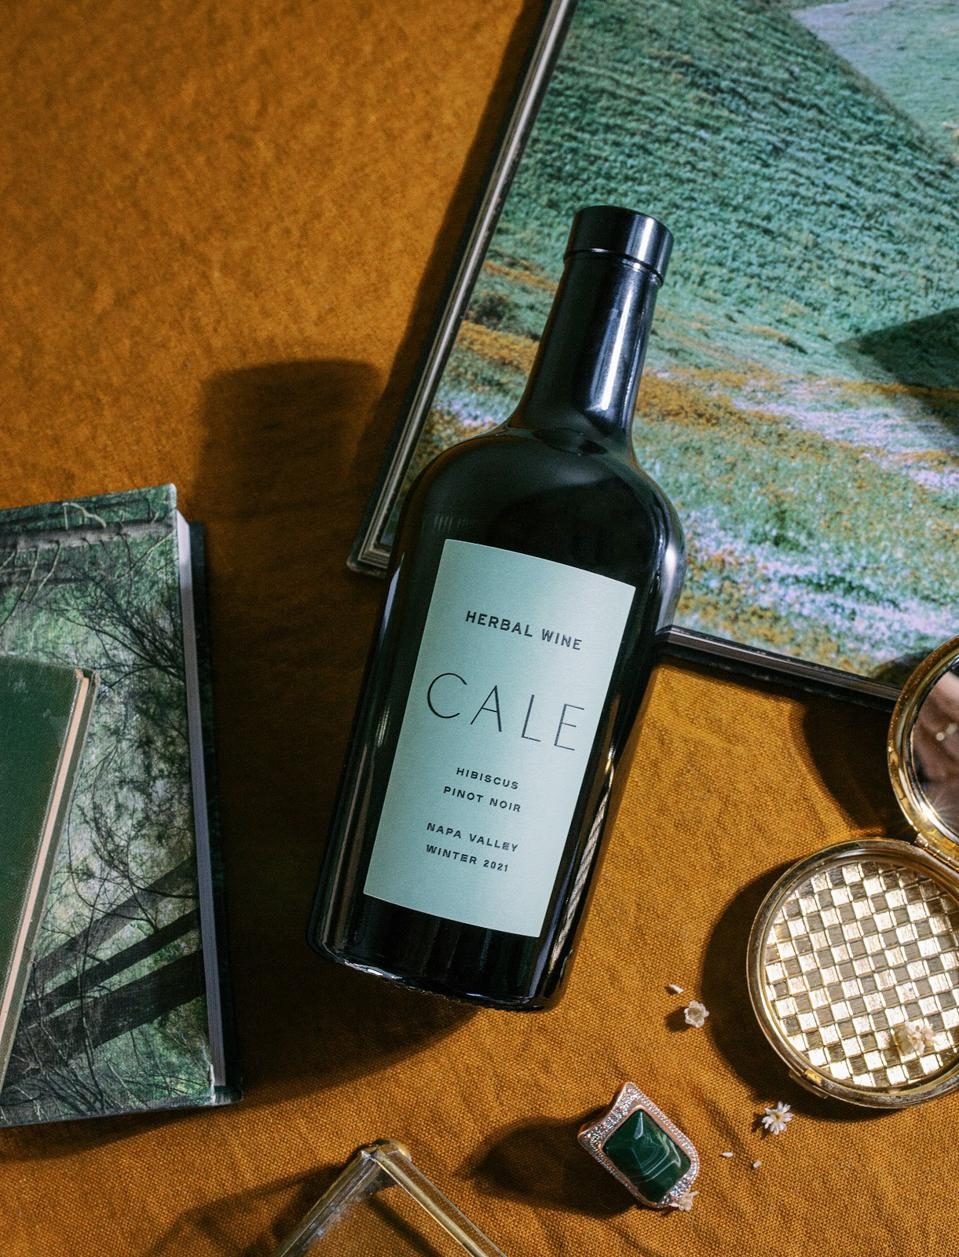 A bottle of wine with the label CALE.